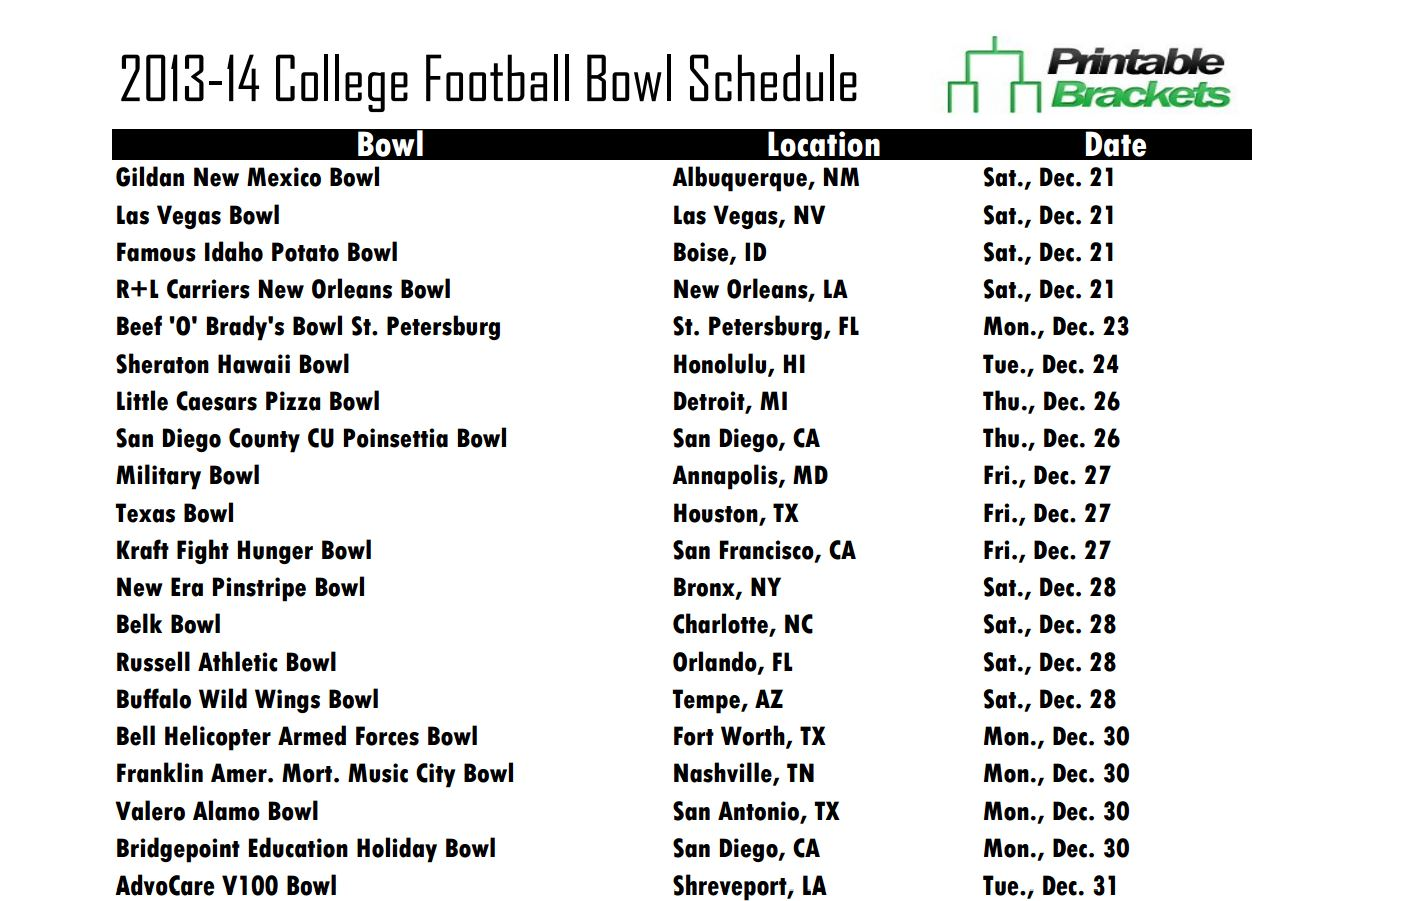 6 Images of College Football Bowl Schedule 2015-2016 Printable